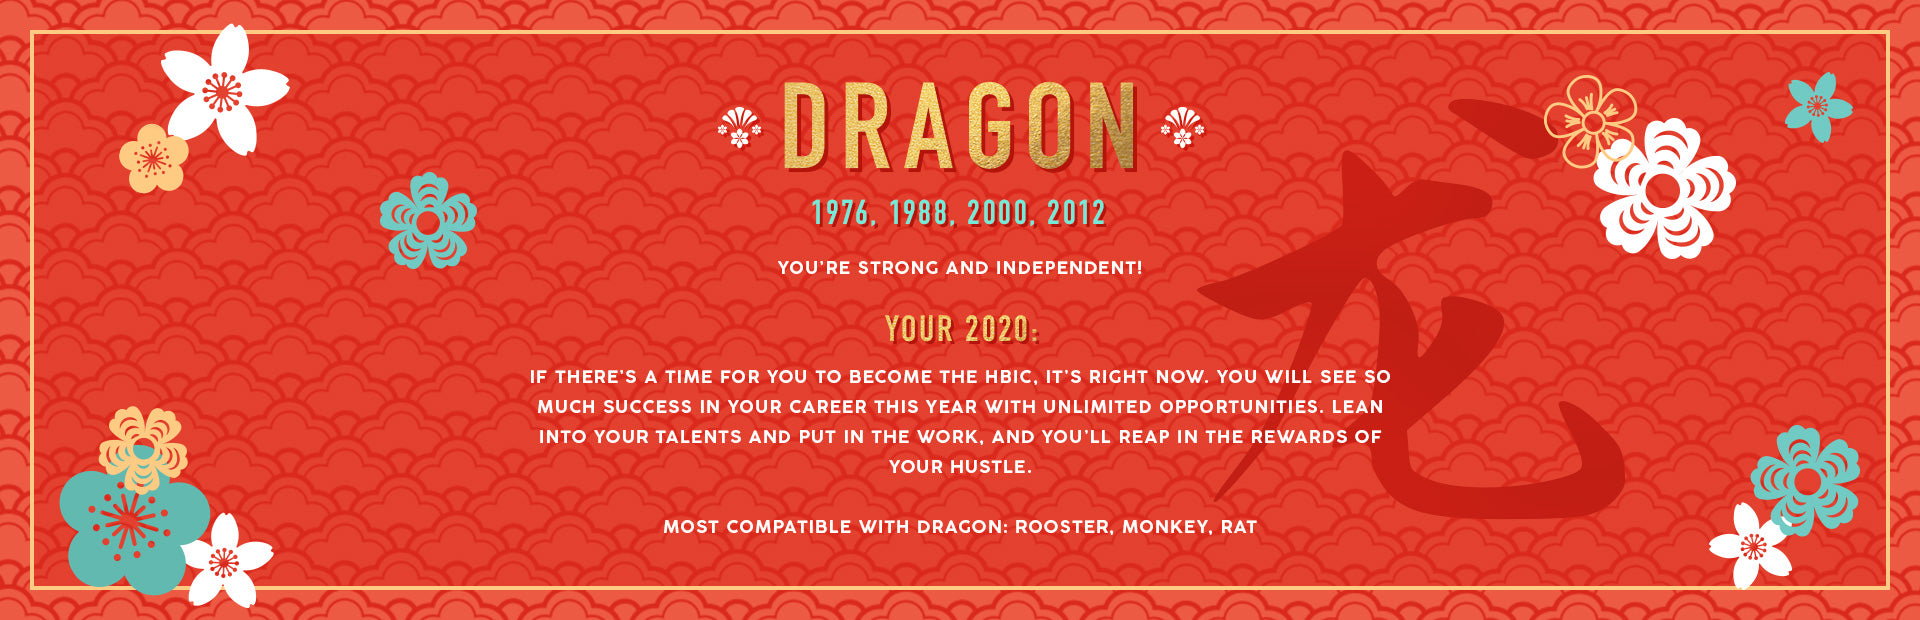 Dragon Lunar New Year Collection Banner Image